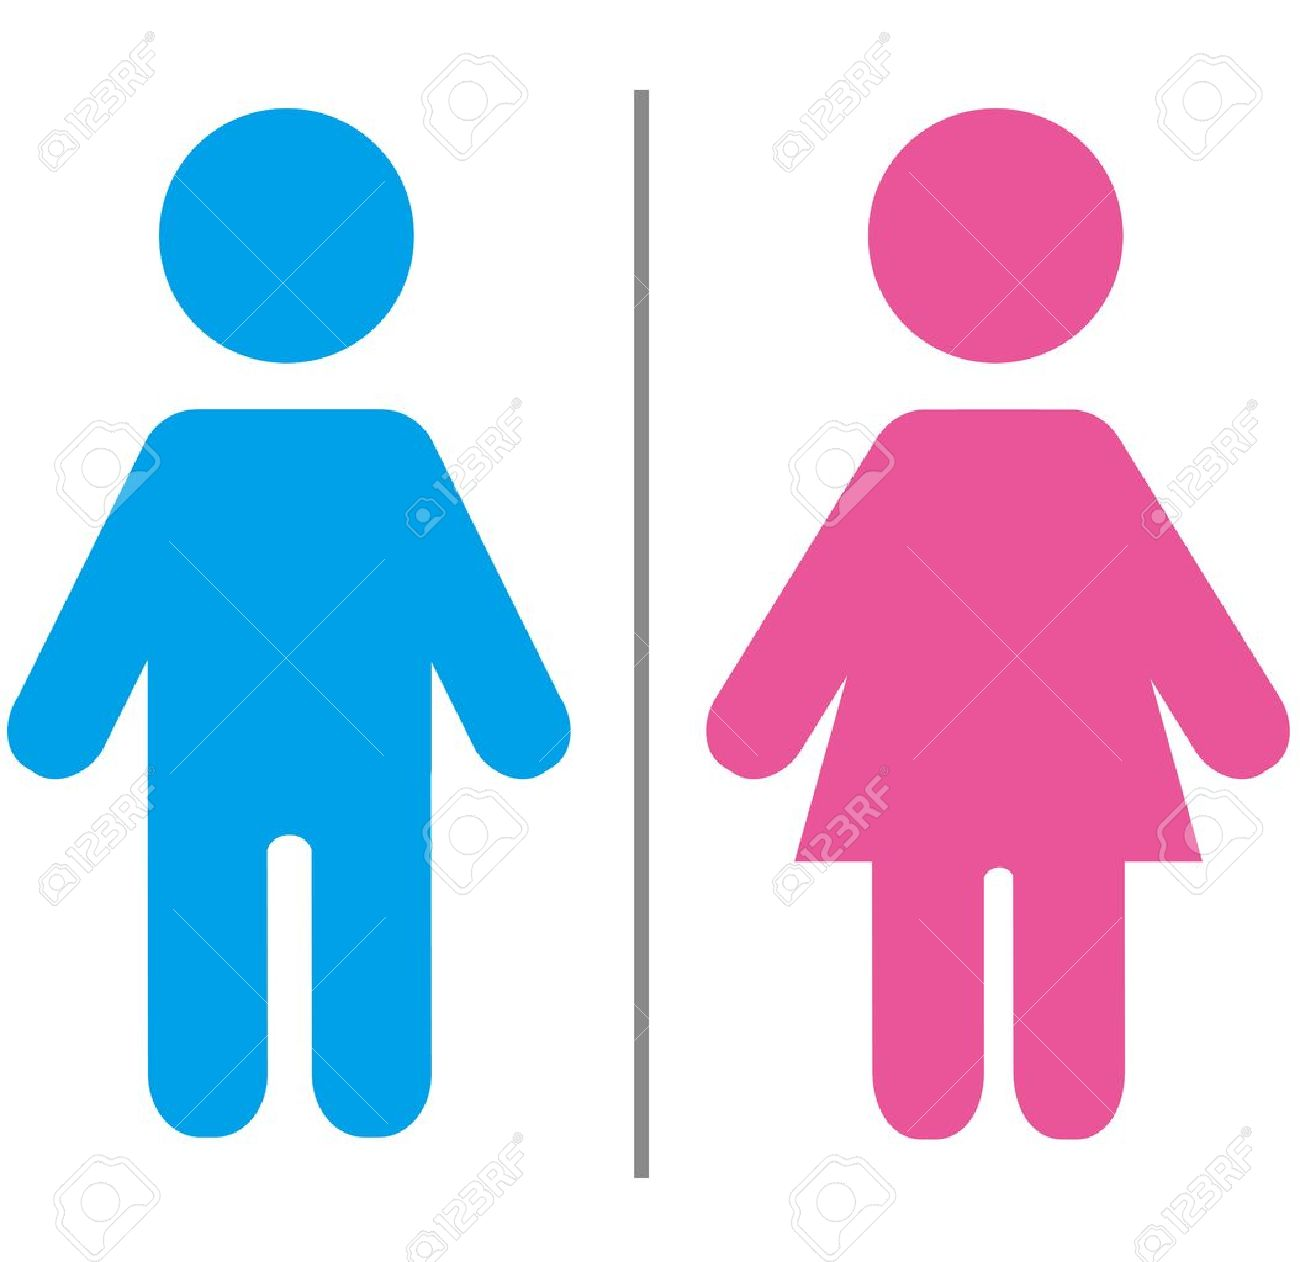 Bathroom Sign Male Vector cute male and female sign royalty free cliparts, vectors, and